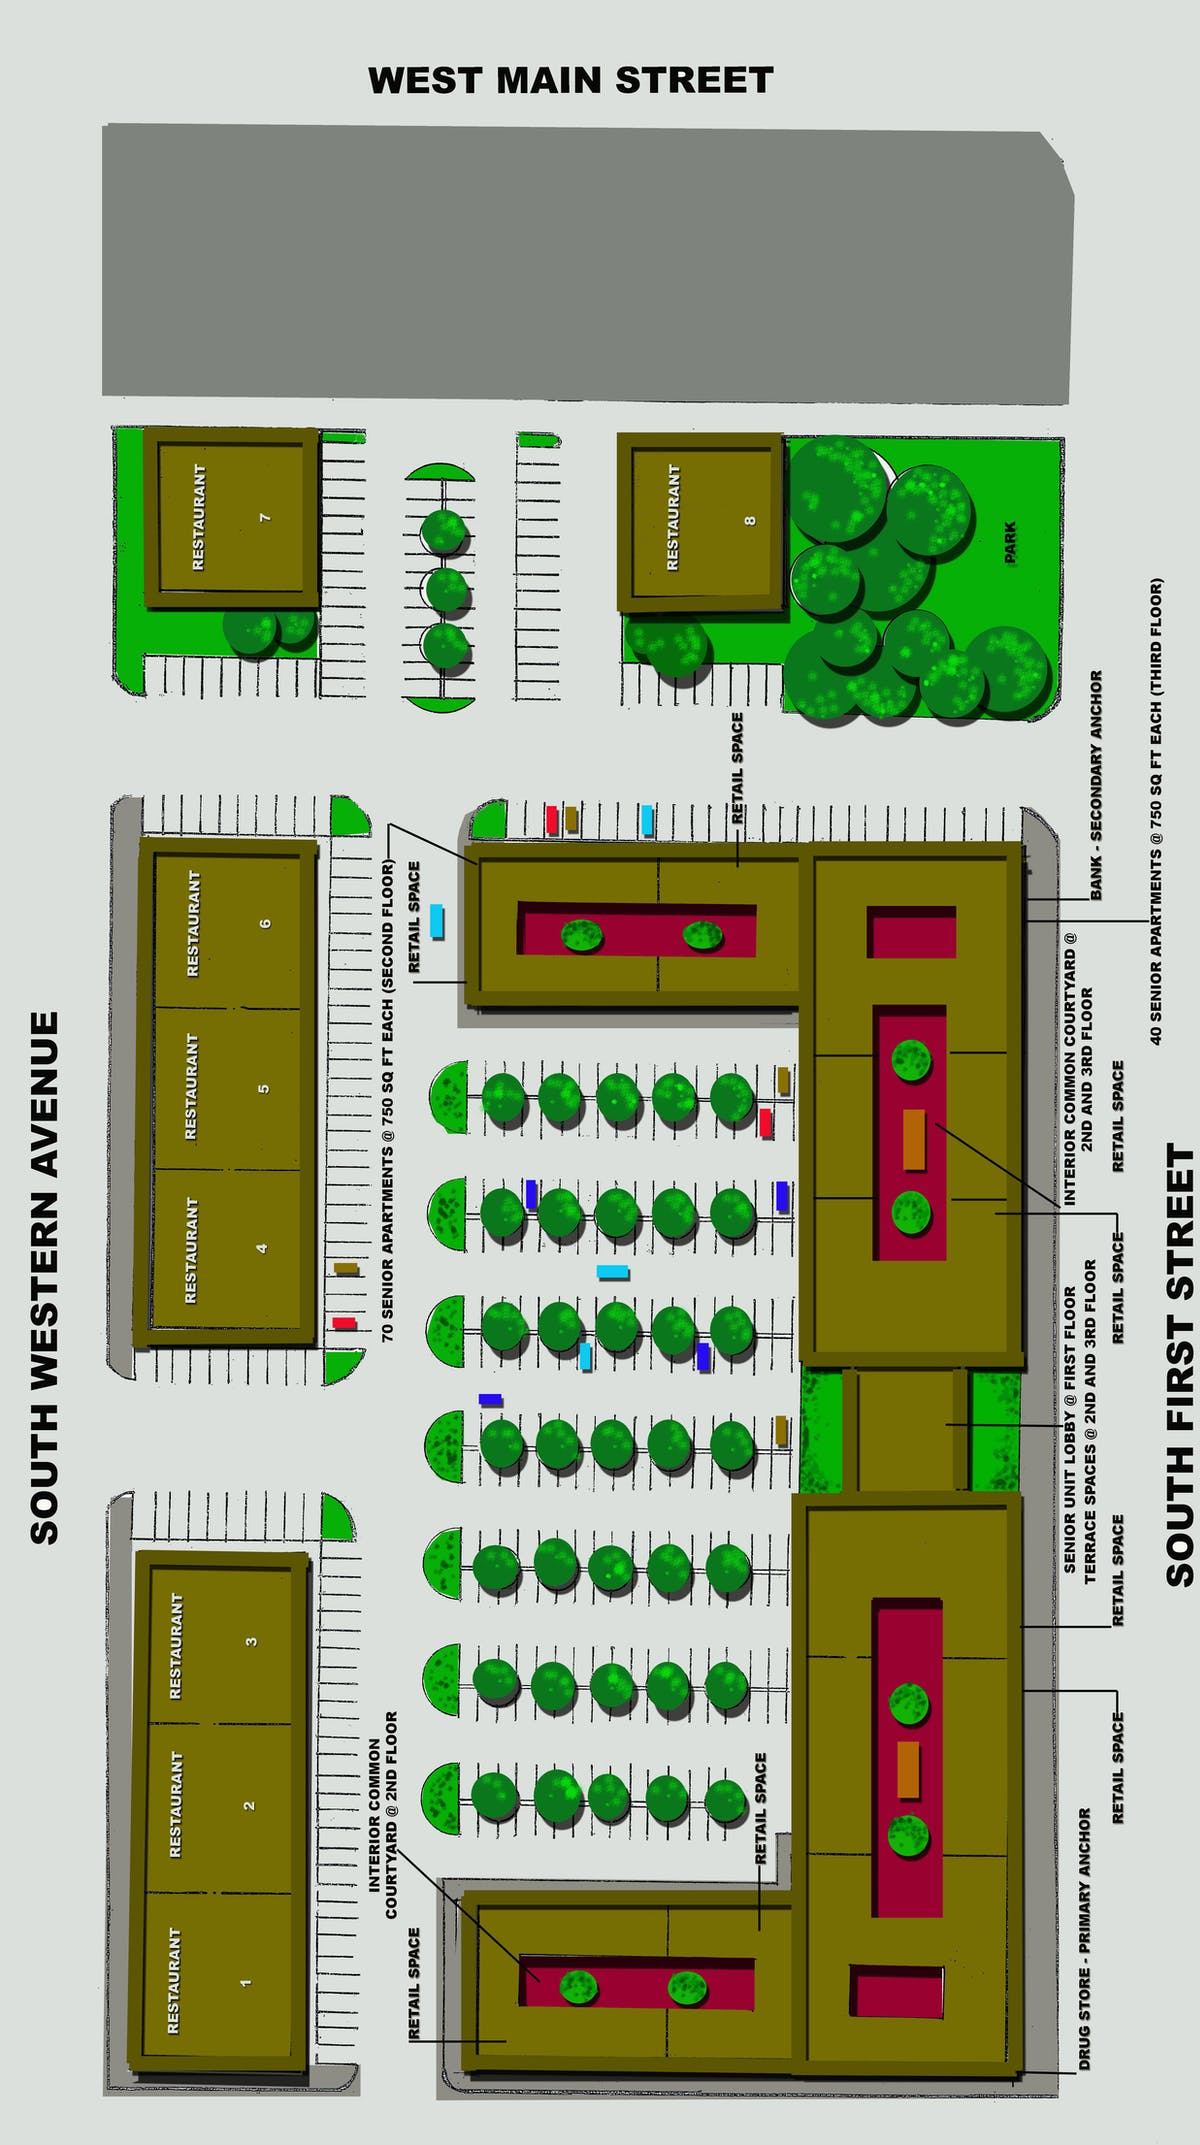 City Of Brawley Water Treatment Facility Redevelopment